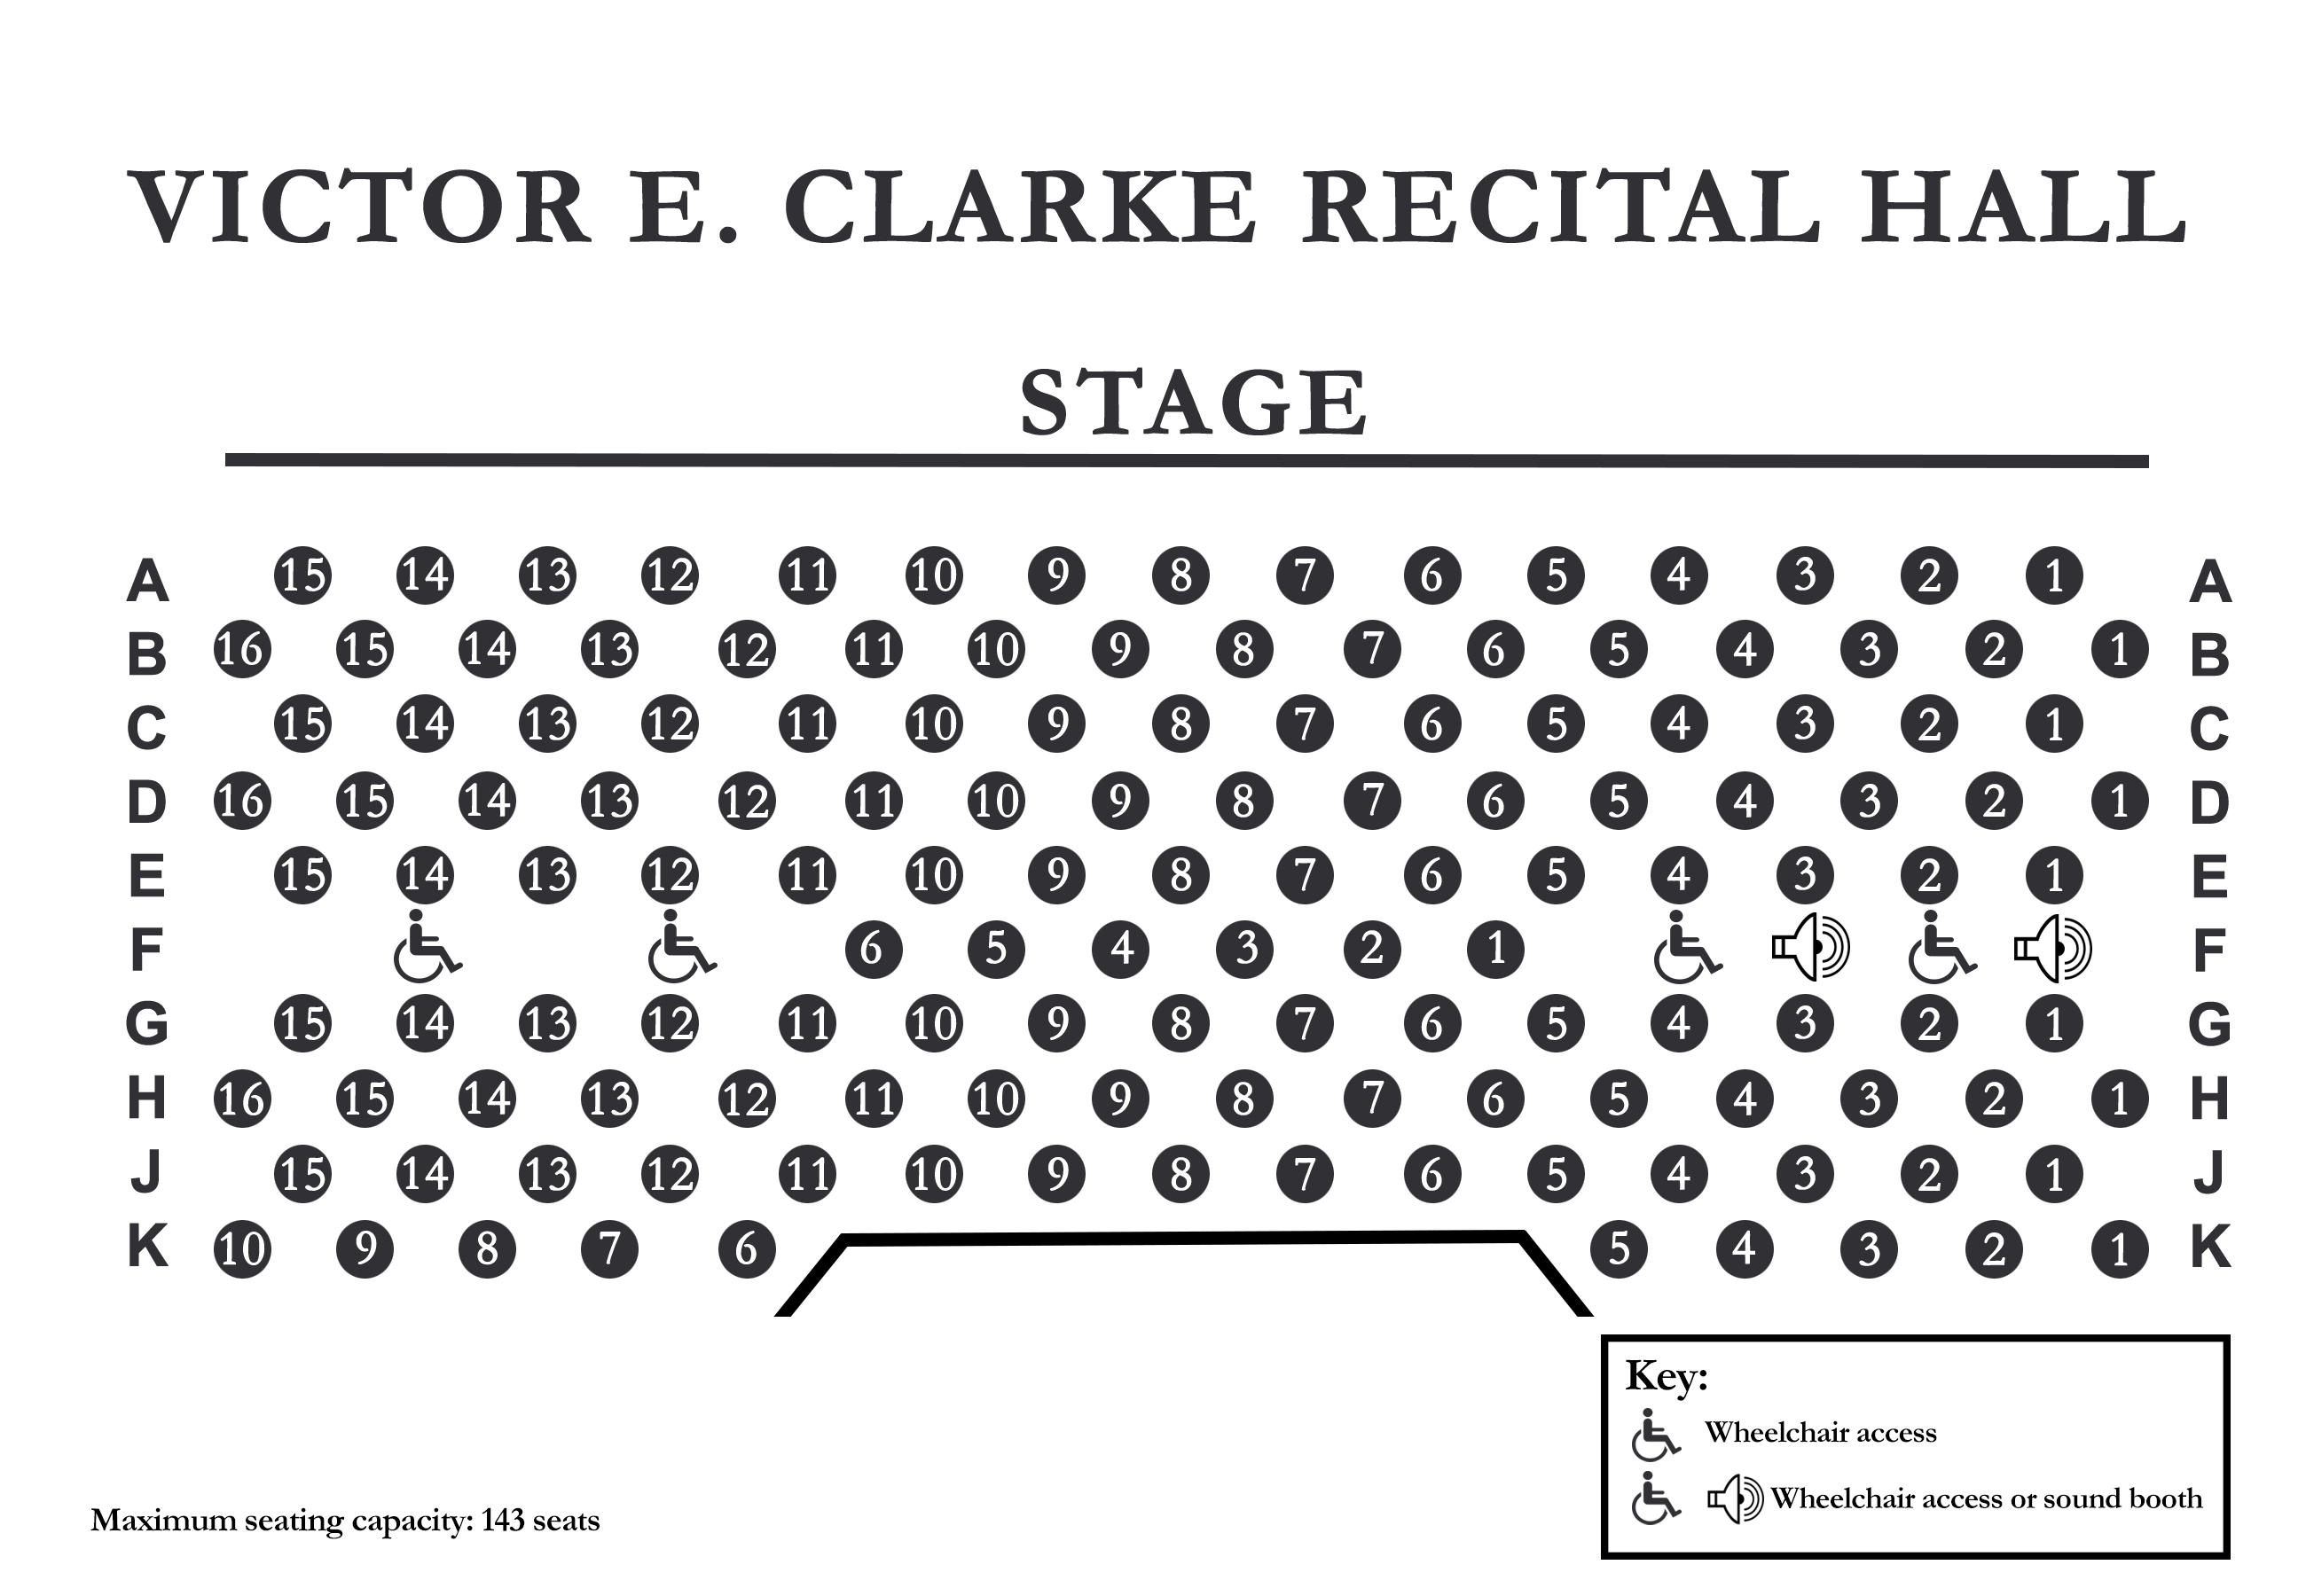 Clarke Recital Hall Seating Chart